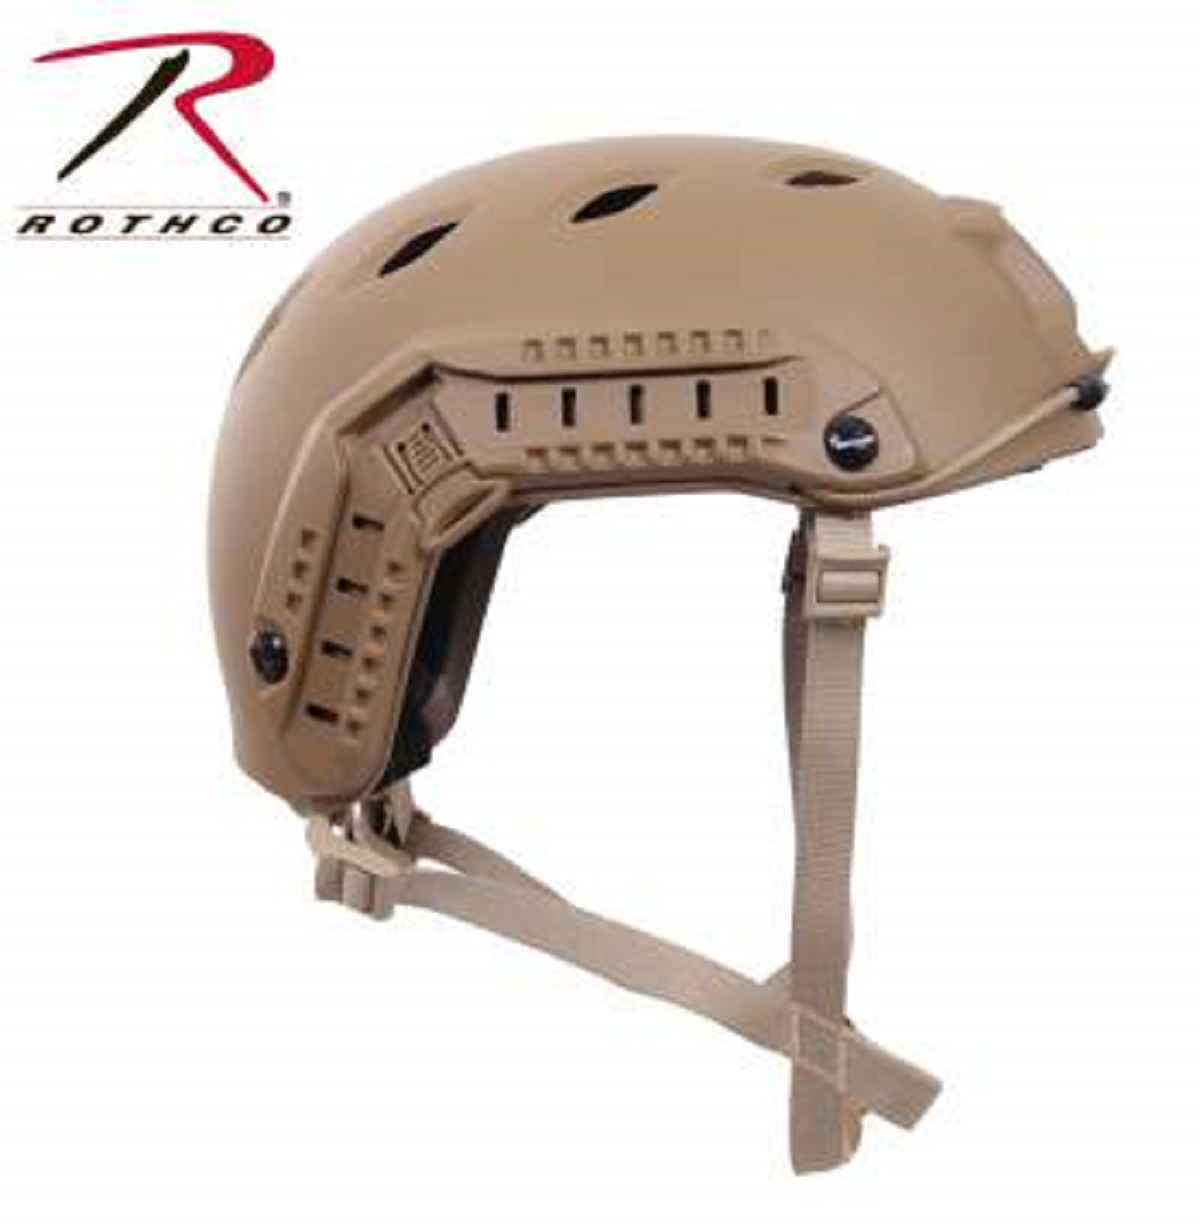 Rothco Advanced Tactical Adjustable Helmet